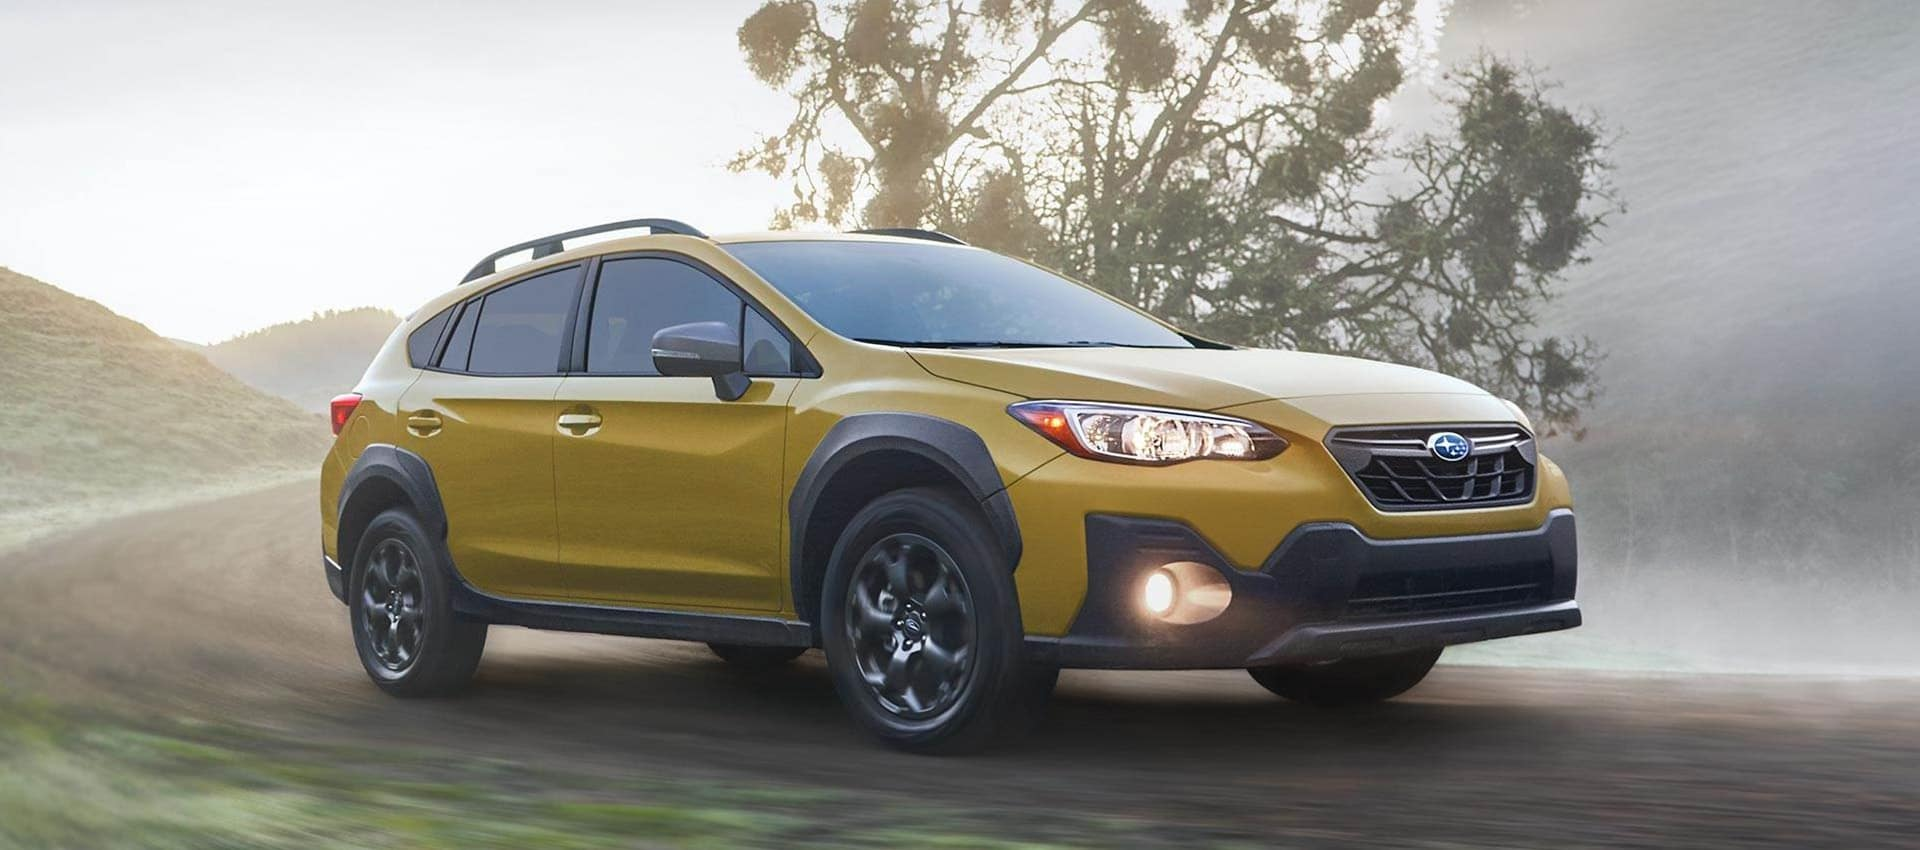 2021 Subaru Crosstrek in St. Louis